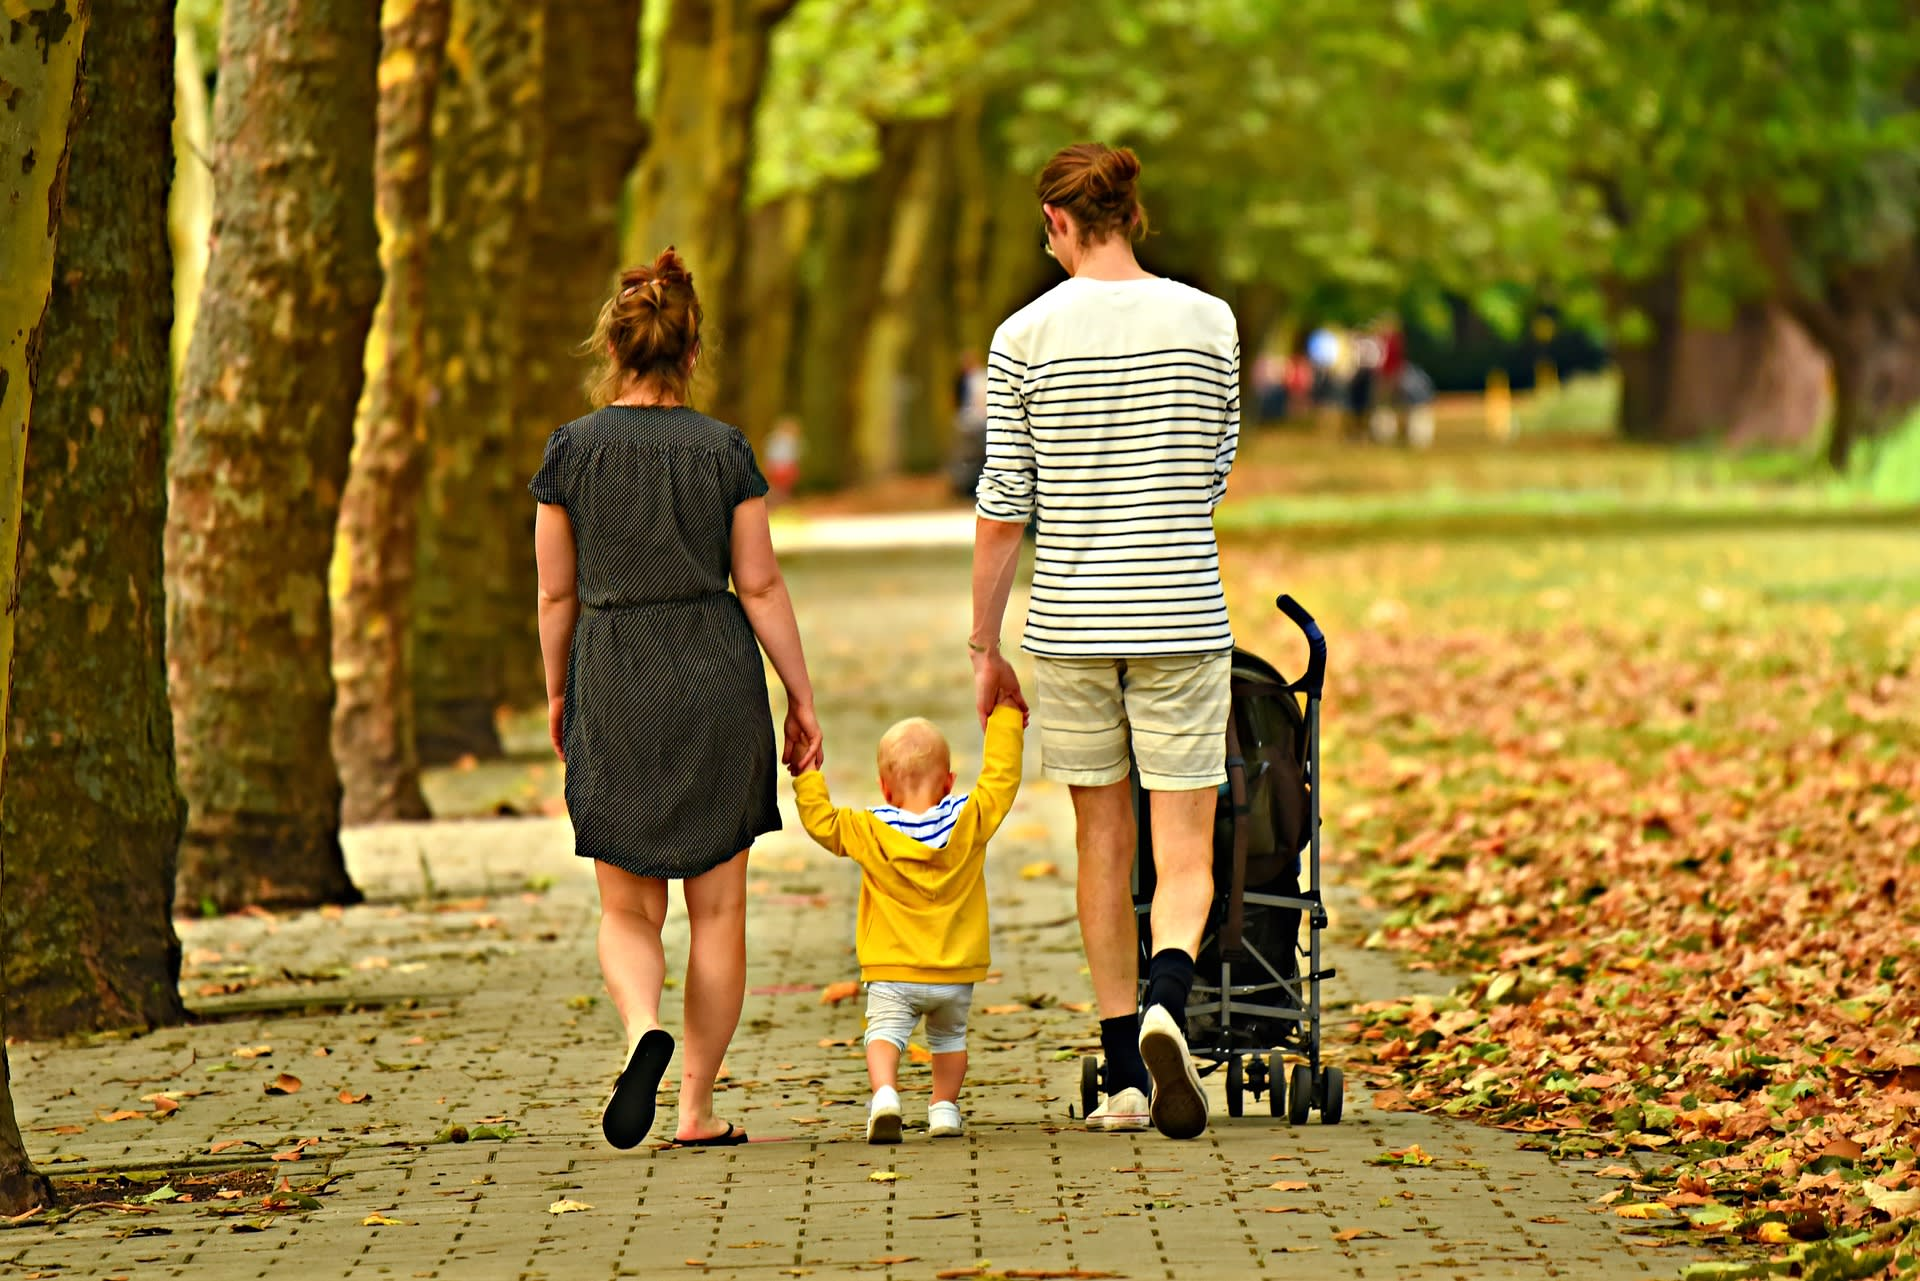 Are you running out of space as your family grows? Self storage can help